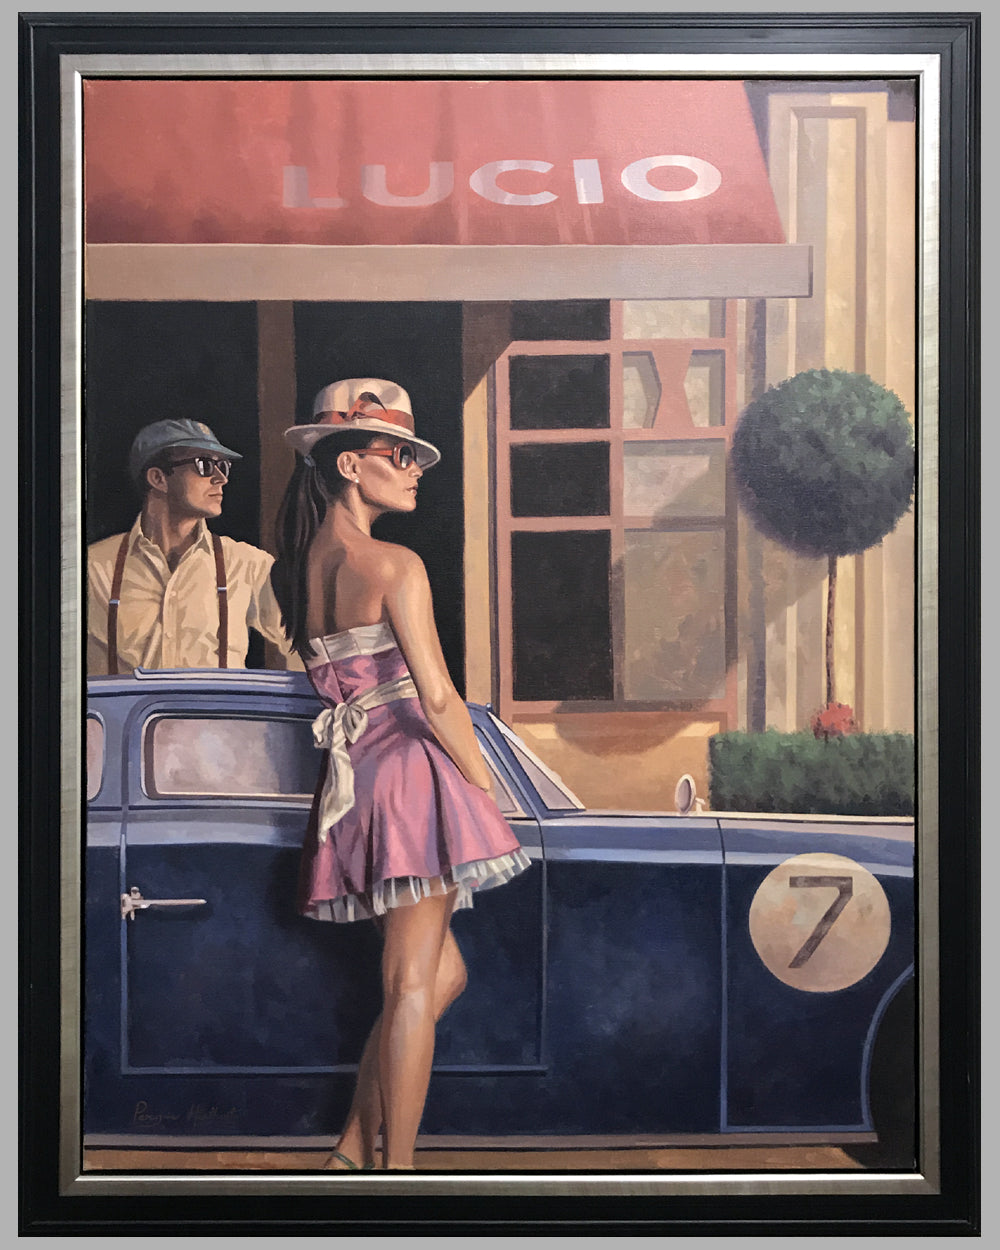 """At Lucio"" painting by Peregrine Heathcote"